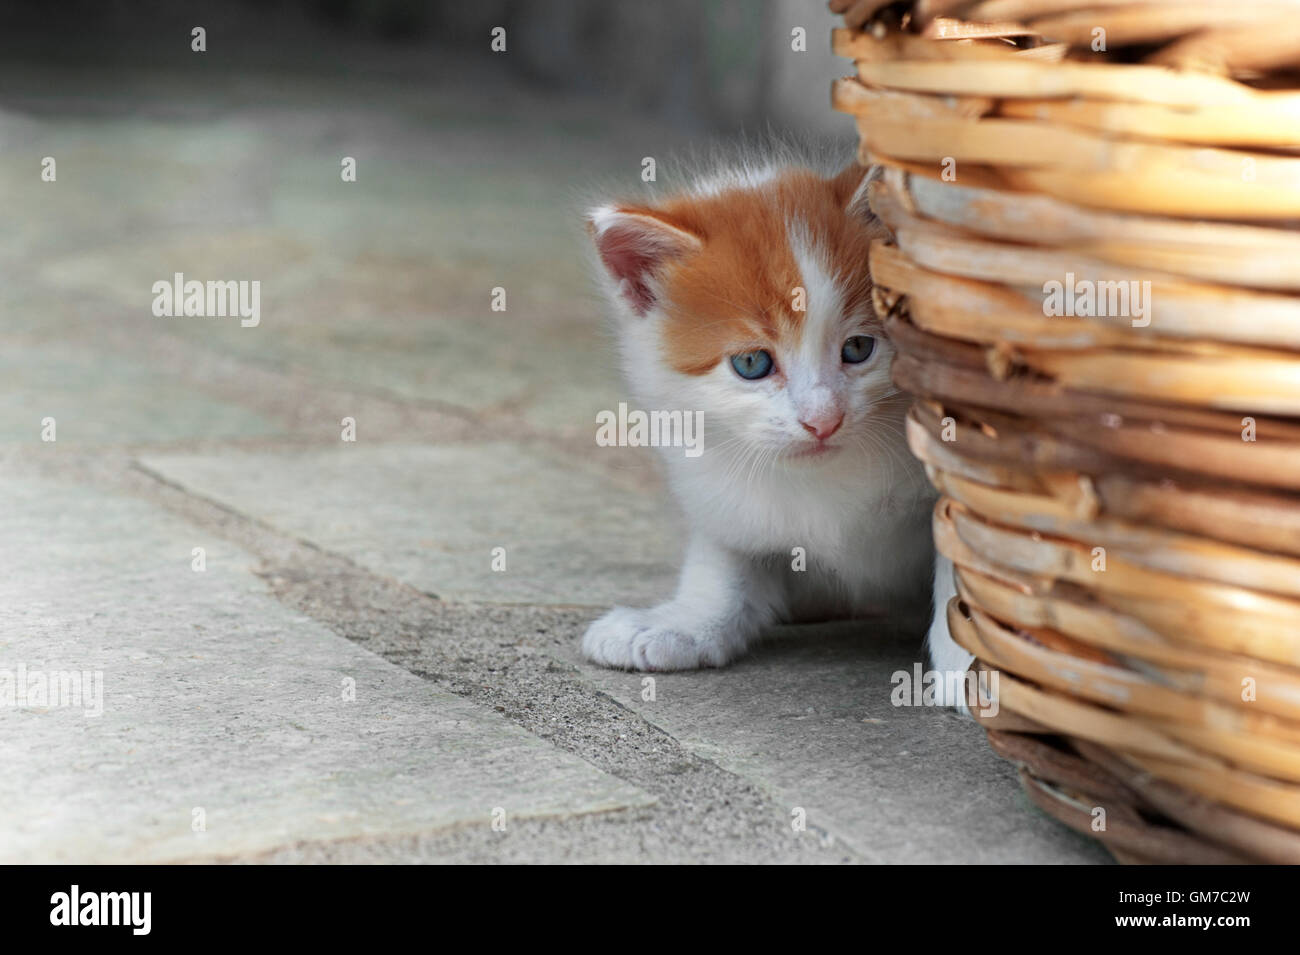 Four weeks old kitten hiding behind a basket outdoors - Stock Image